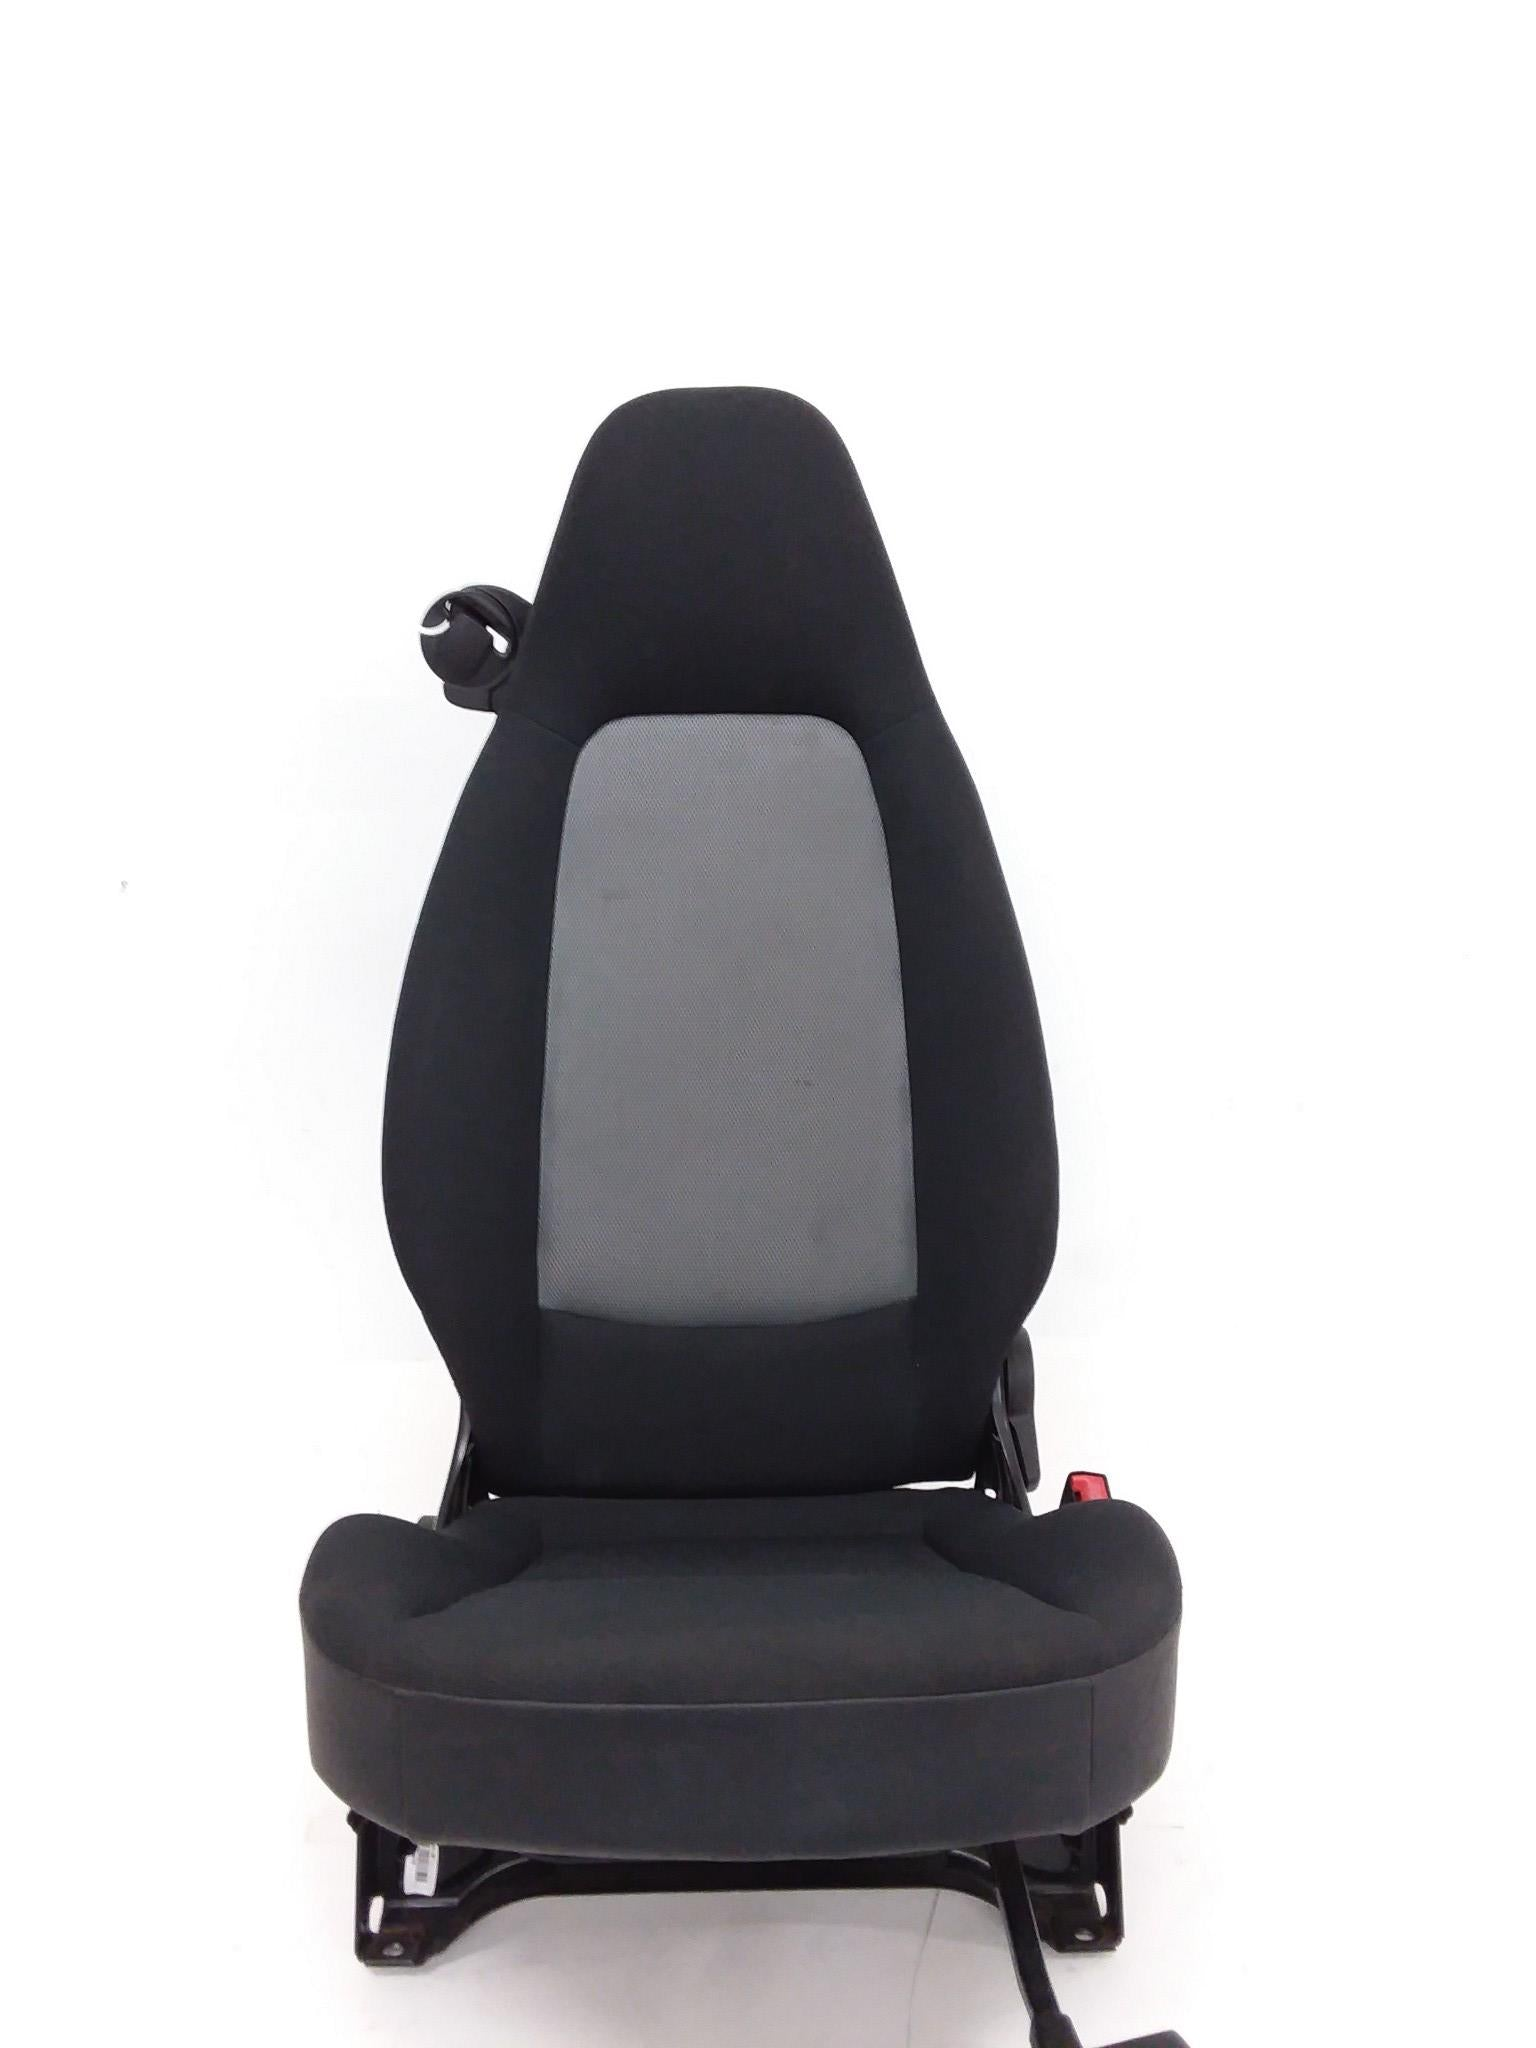 SMART FORTWO FRONT RIGHT RH SEAT 2008 2009 2010 2011 2012 2013 2014 2015 OEM